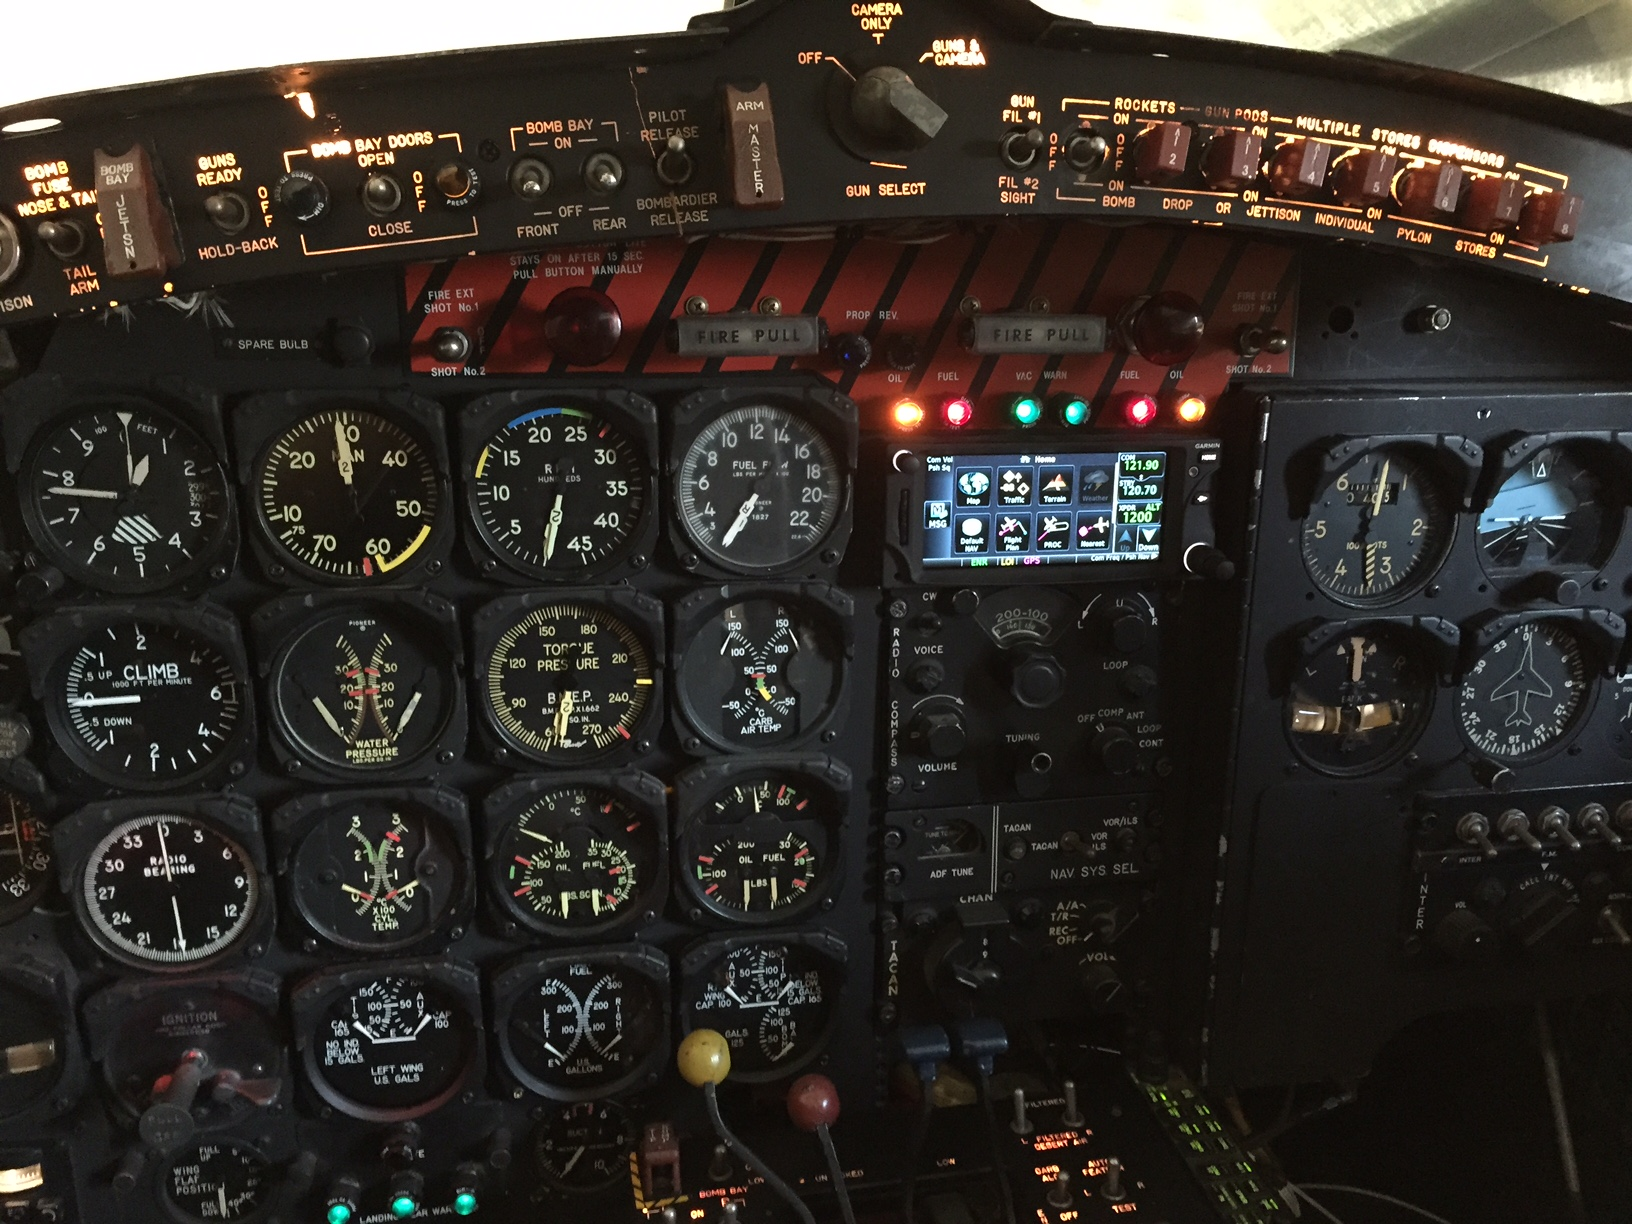 Instrument panel fully restored. (photo by Jim Reynolds)